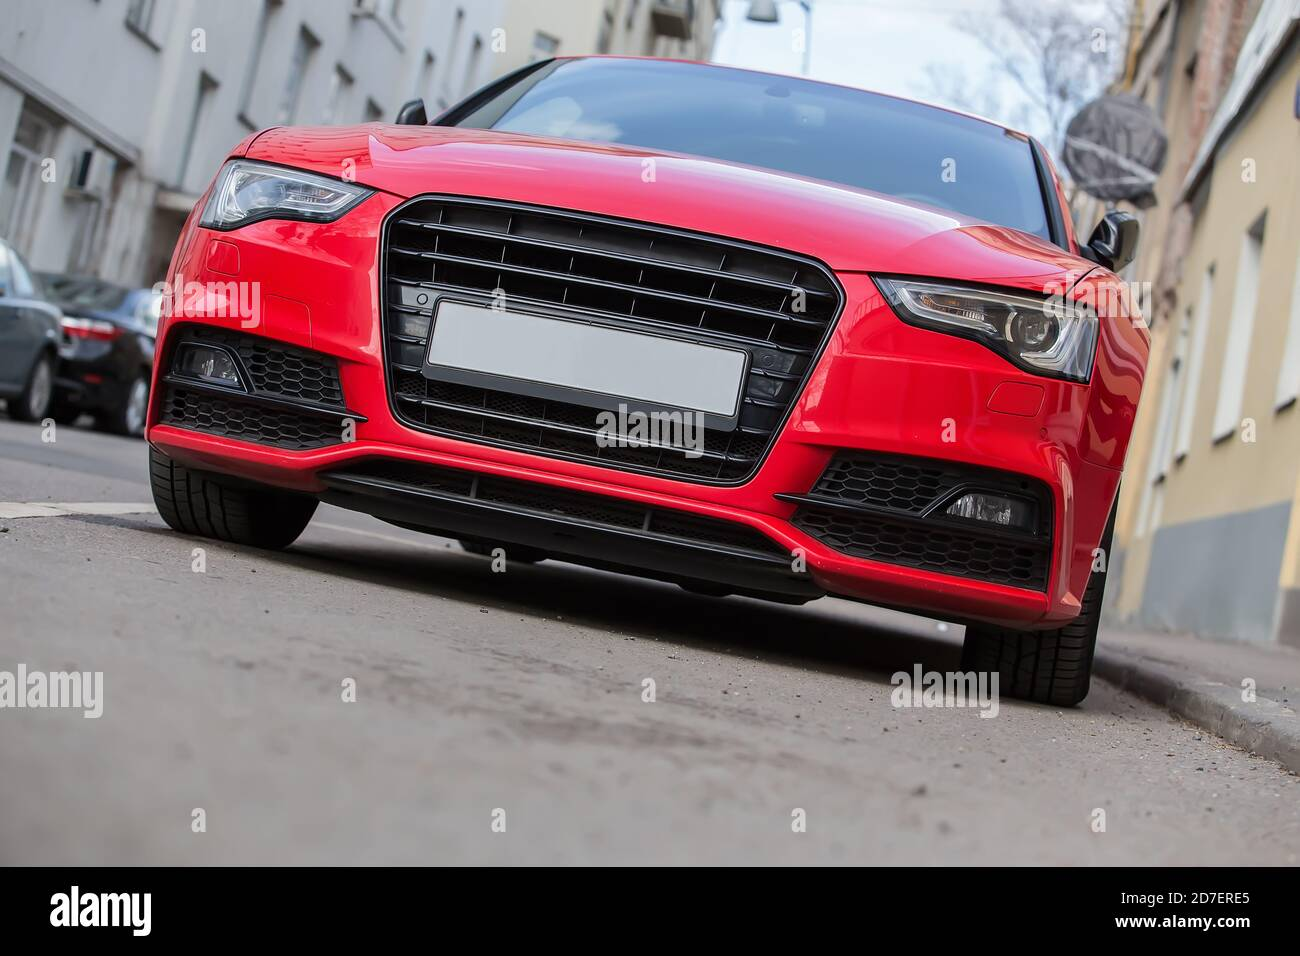 Red Luxury Car High Resolution Stock Photography And Images Alamy